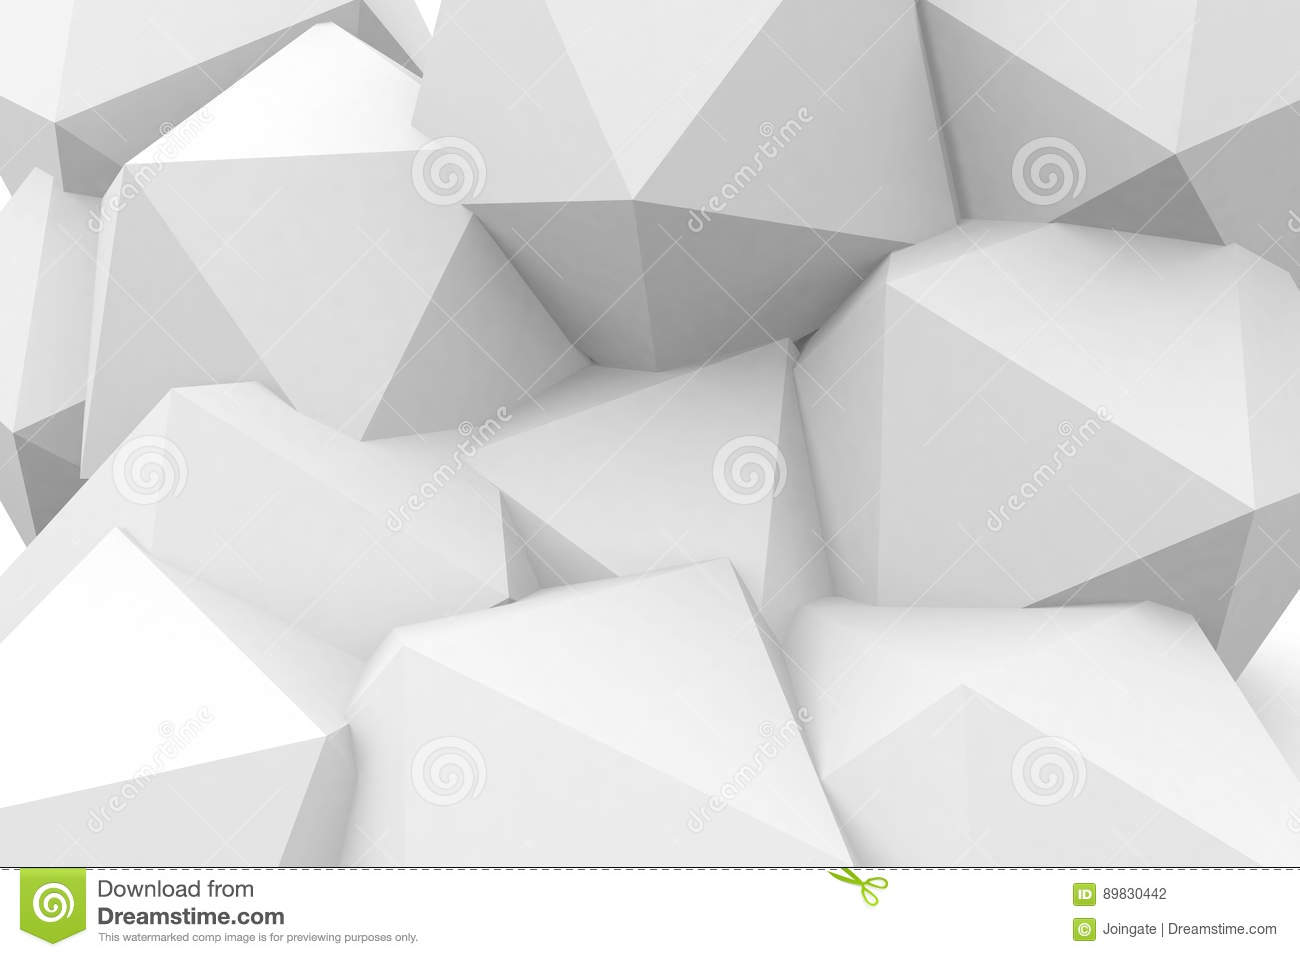 3d Rednered Geometric Shapes In White Abckground Stock